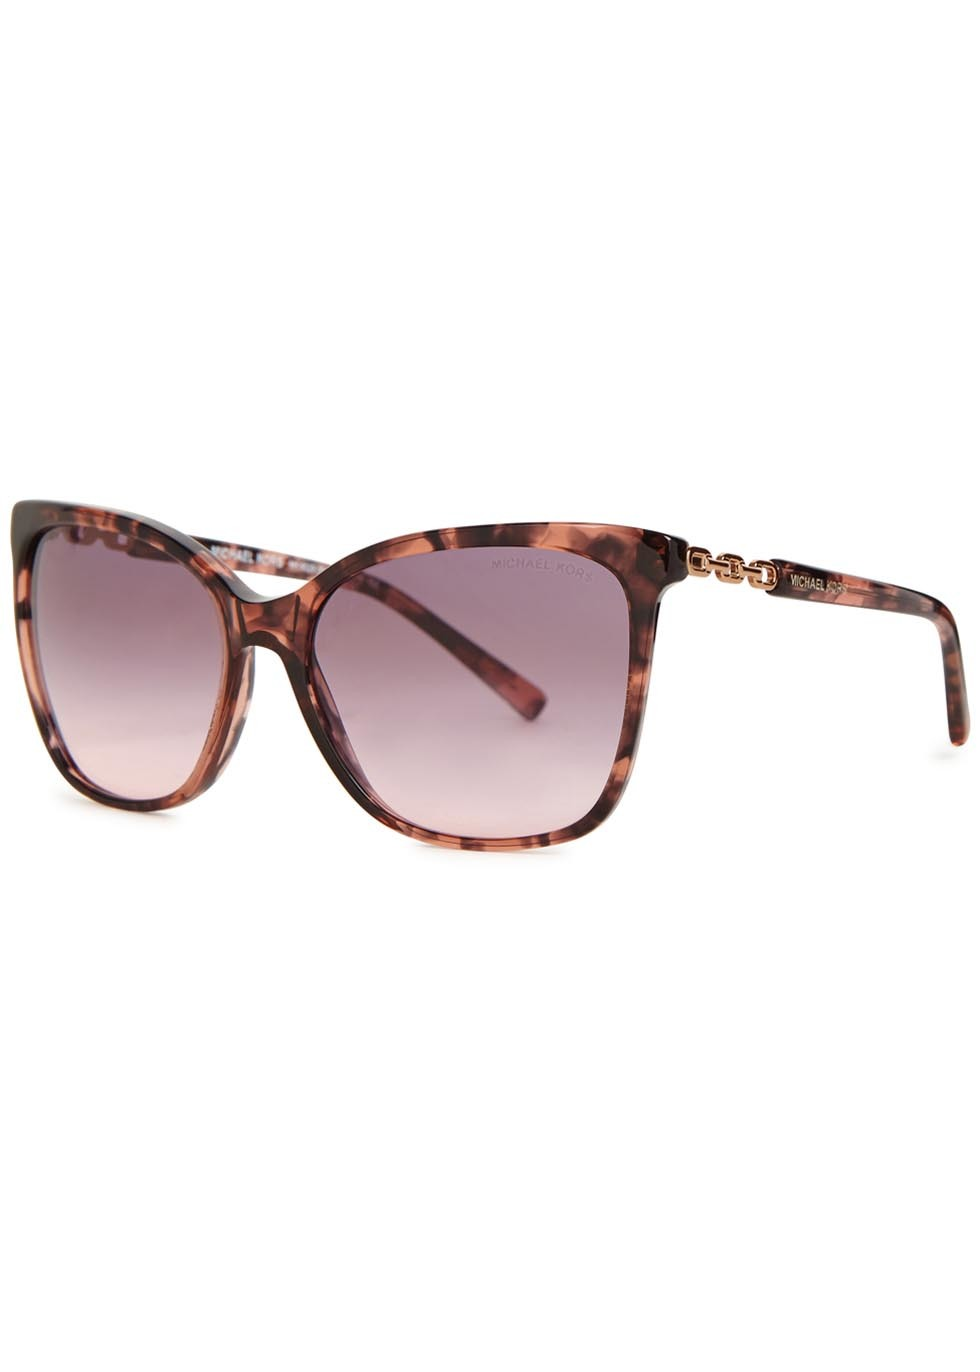 Sadie Ii Tortoiseshell Square Frame Sunglasses - predominant colour: chocolate brown; secondary colour: tan; occasions: casual, holiday; style: square; size: large; material: plastic/rubber; pattern: tortoiseshell; finish: plain; season: a/w 2015; wardrobe: basic